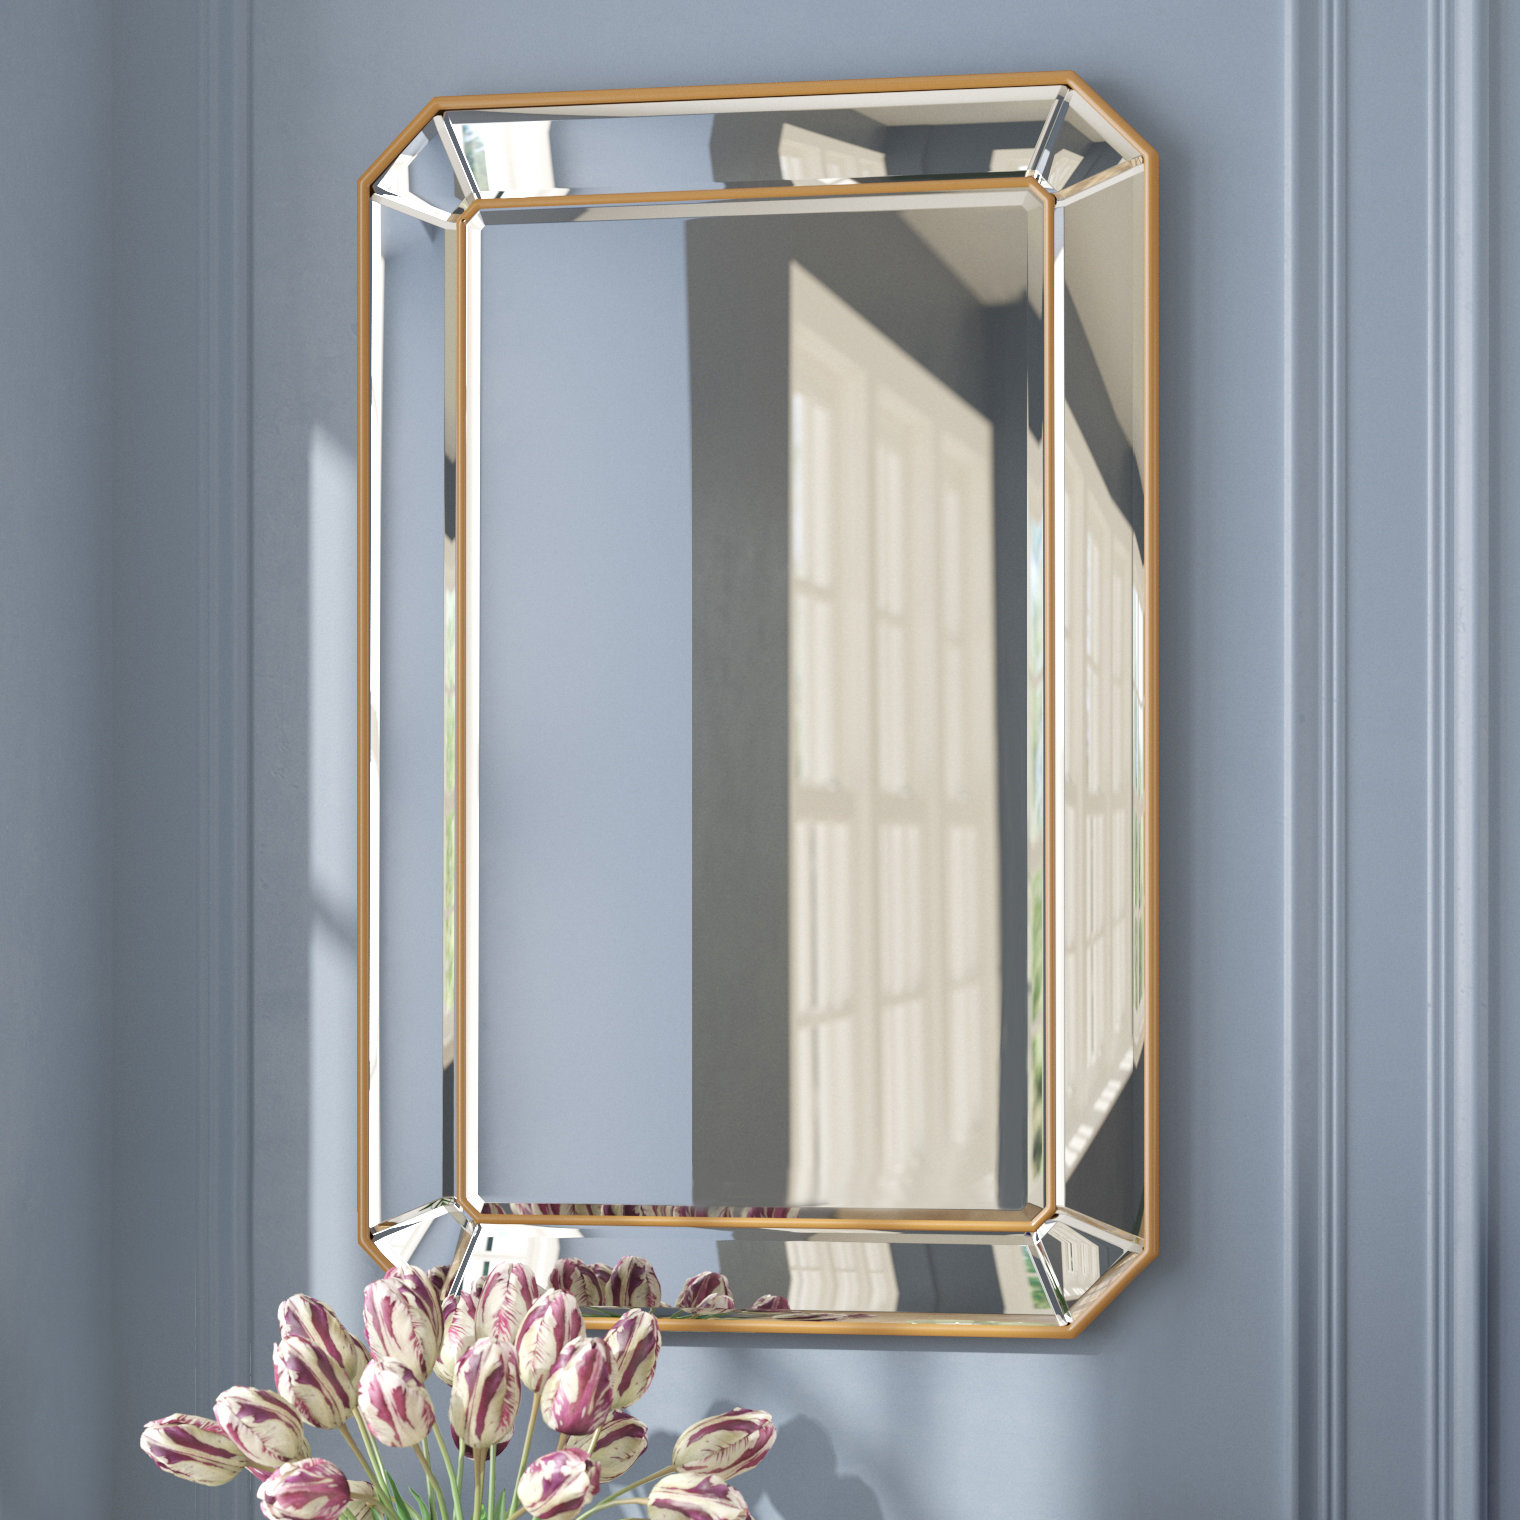 Willa Arlo Interiors Briley Rectangle Gold Angled Accent Pertaining To Rectangle Accent Wall Mirrors (View 4 of 30)